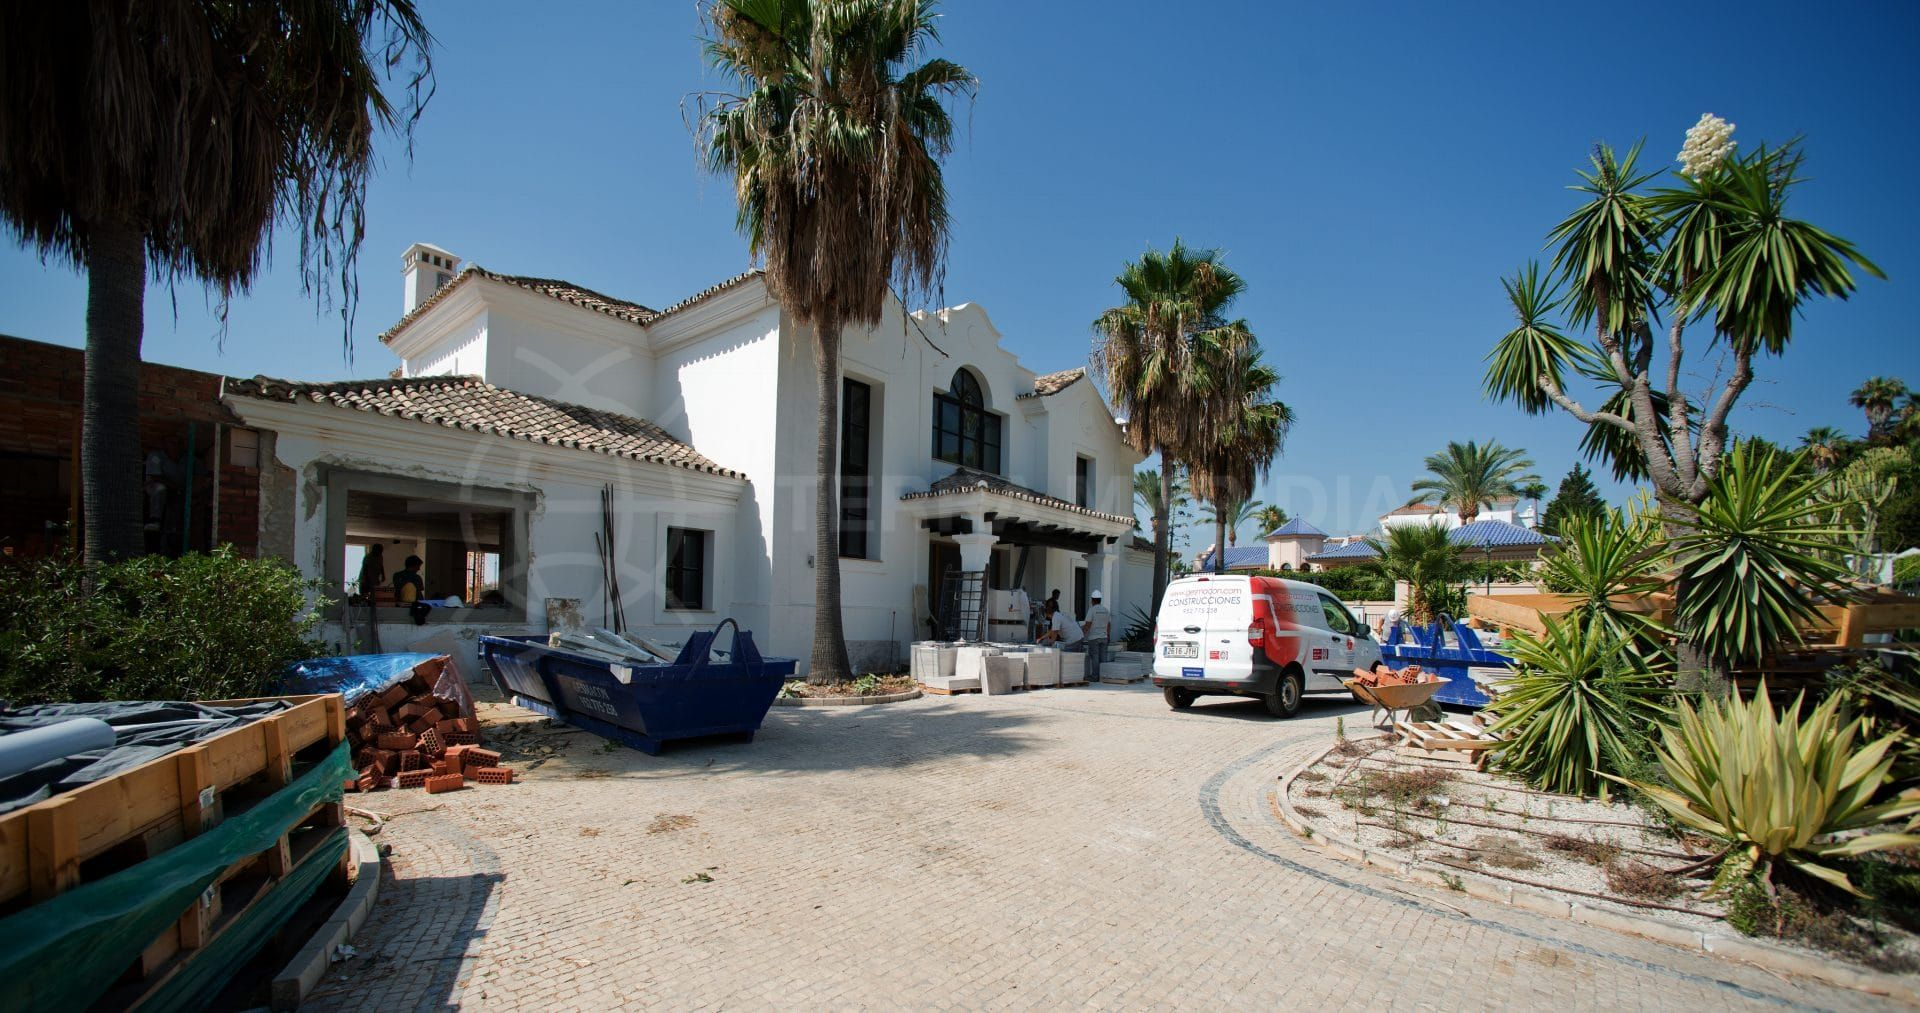 Buying a plot and building a home in Spain